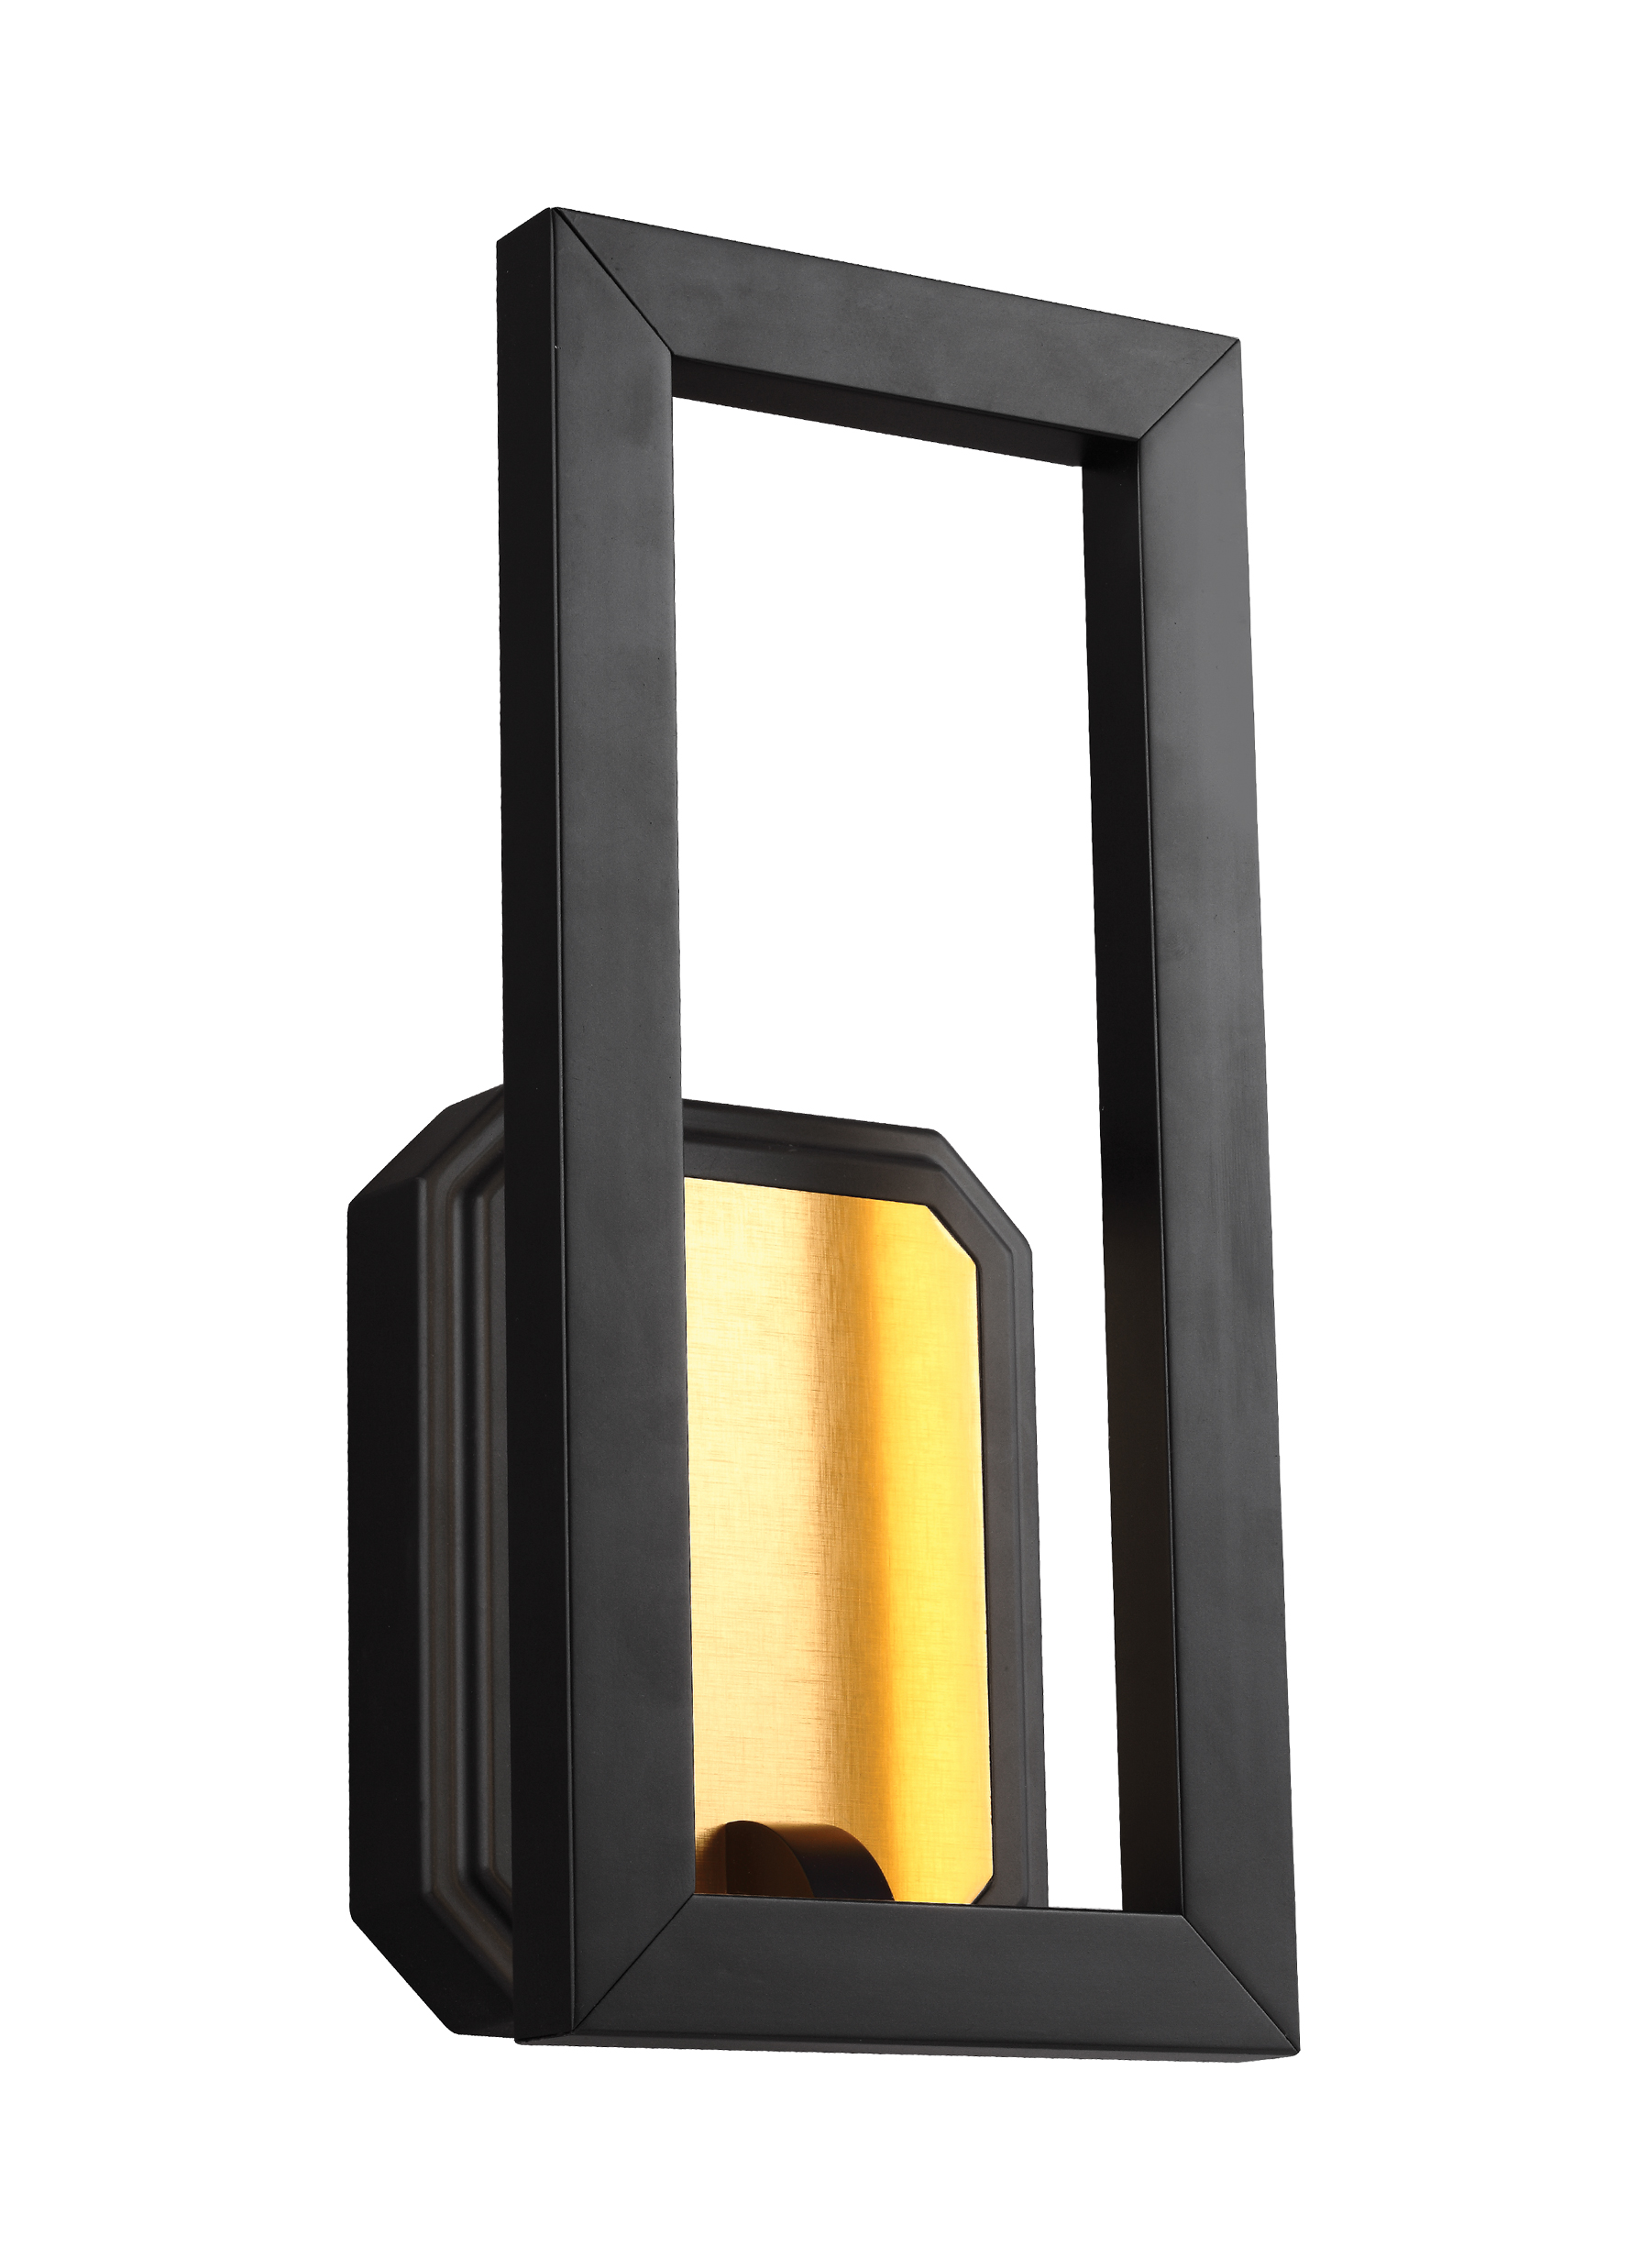 Wb1775orb12 Led Wall Sconceoil Rubbed Bronze